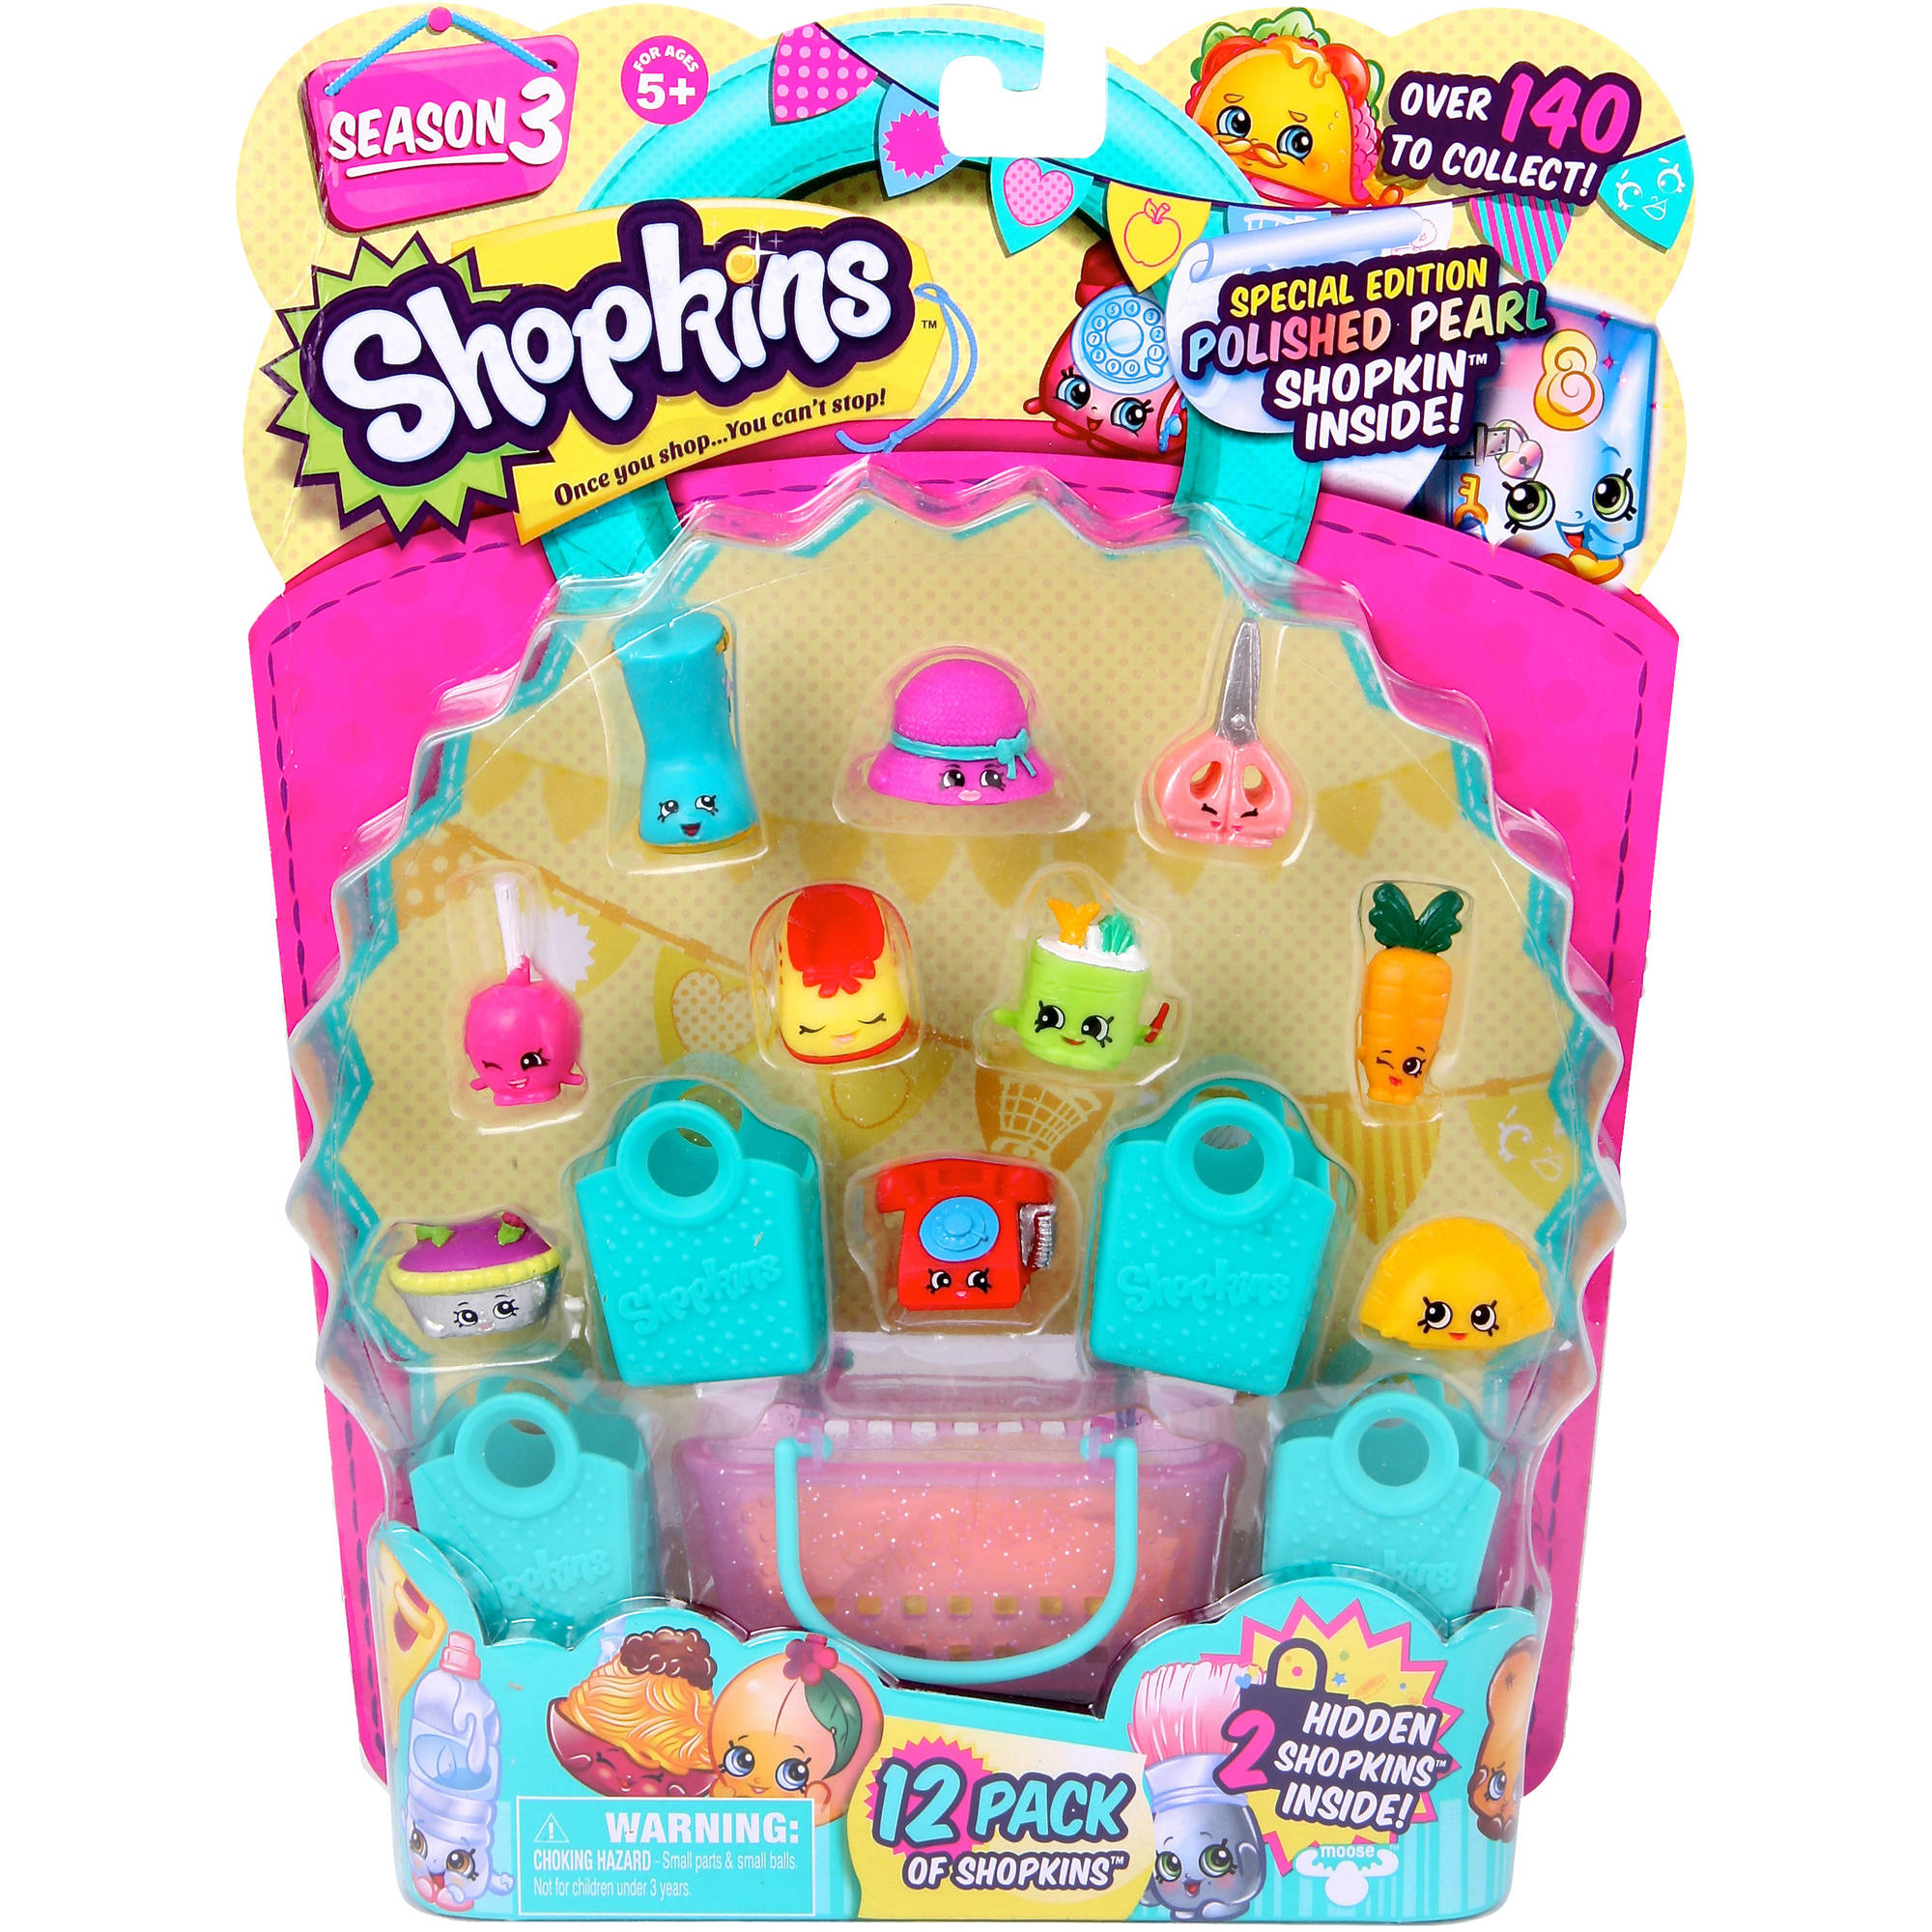 Shopkins Season 3 12-Pack